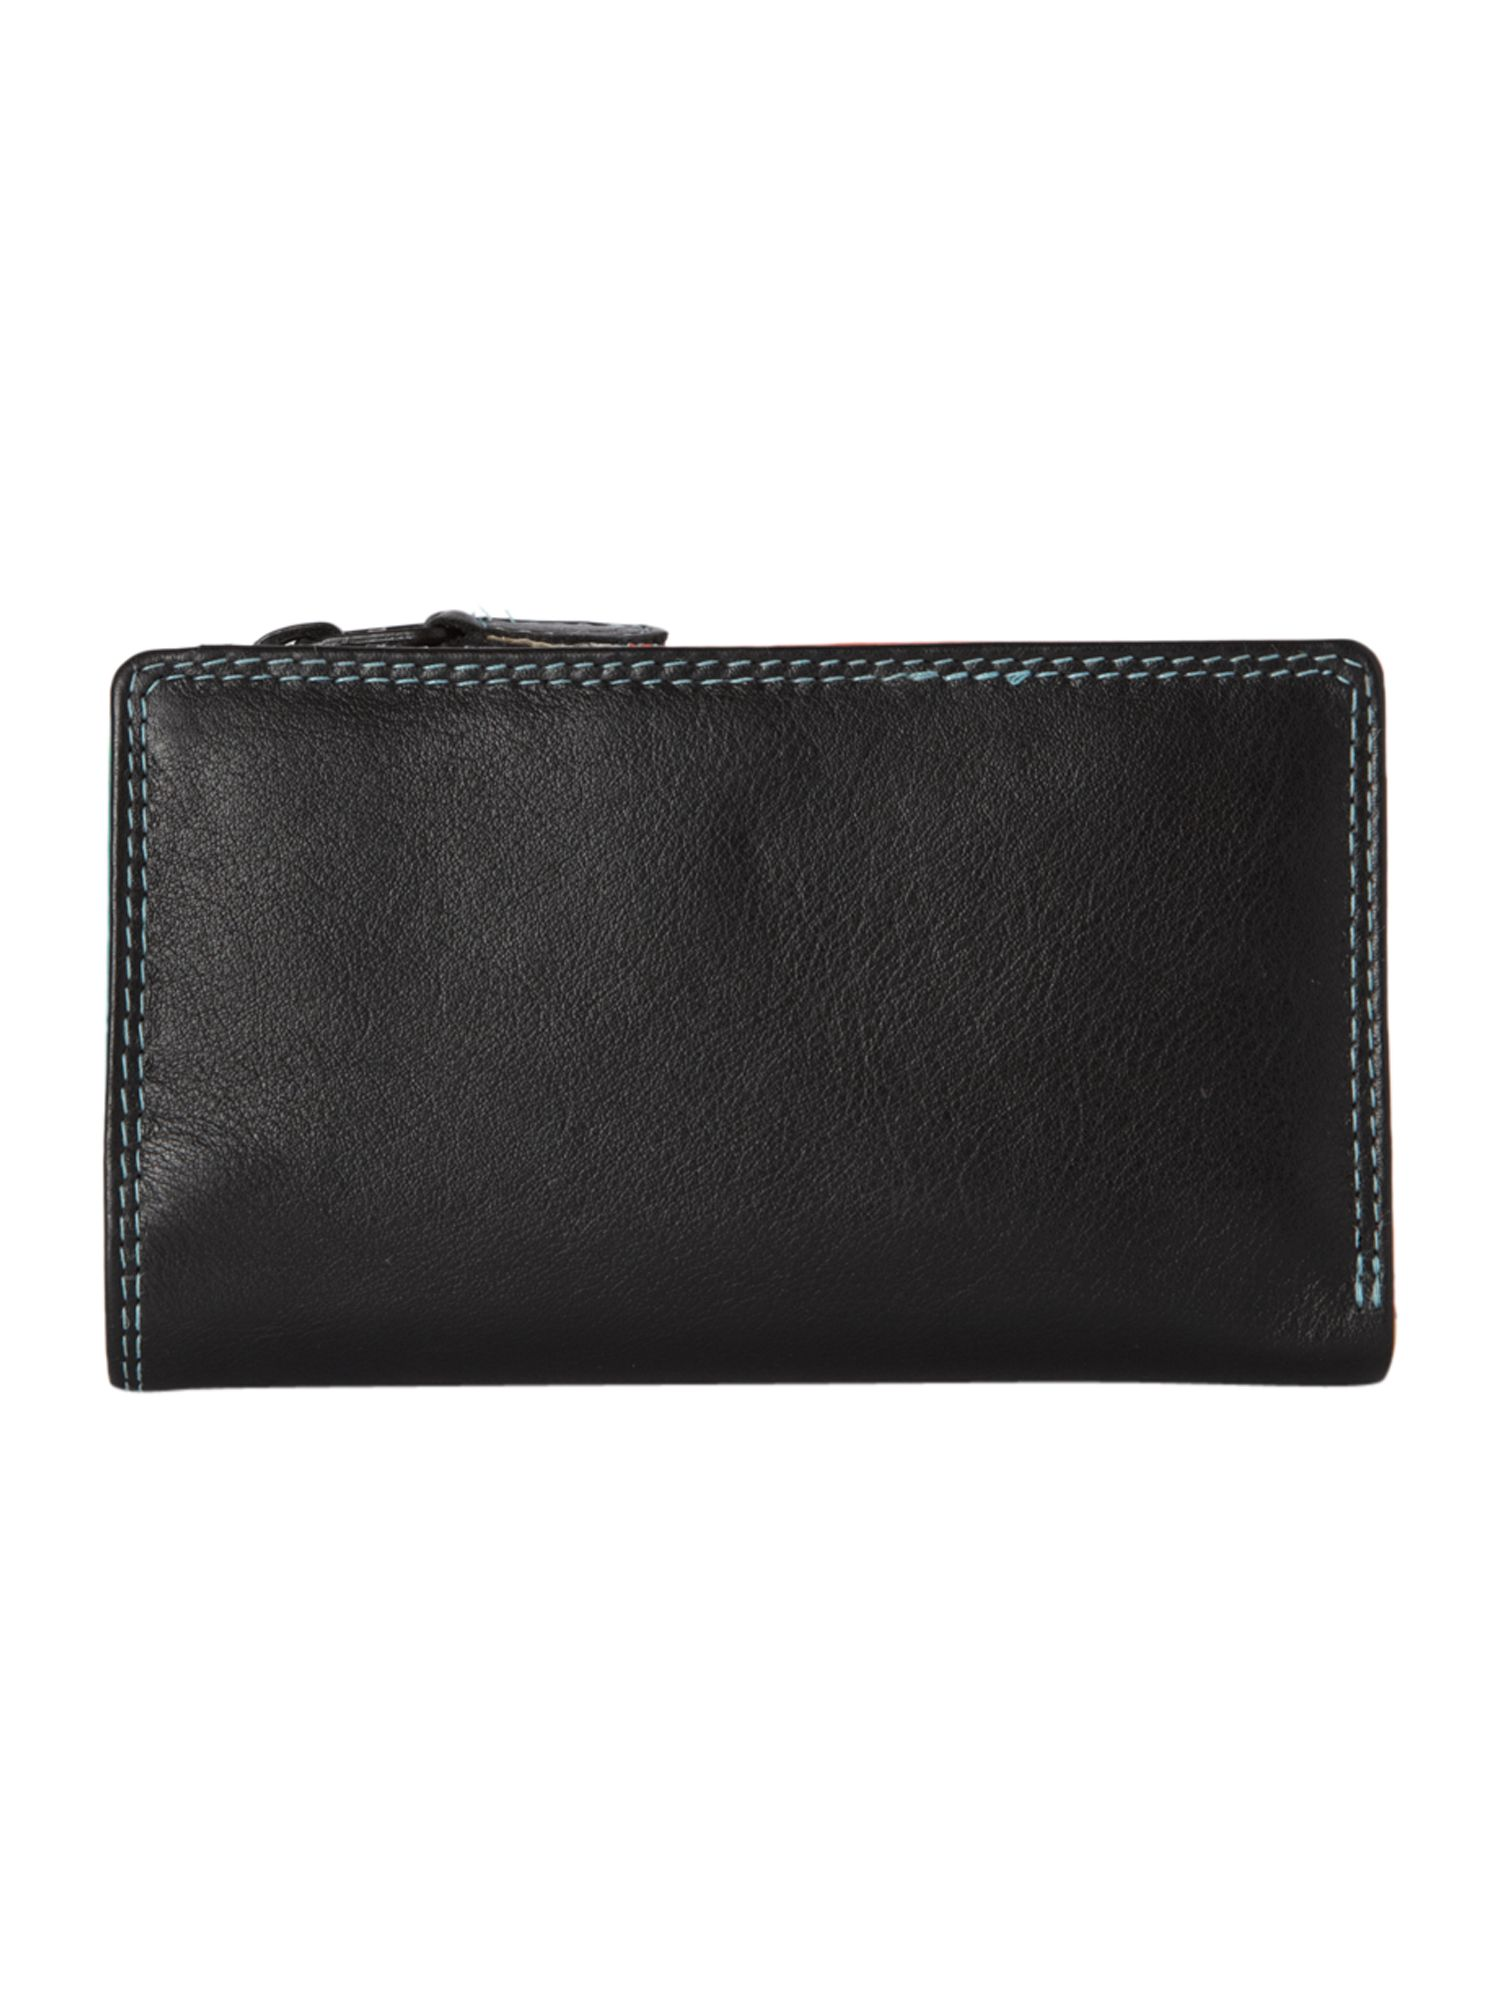 flap over continental purse